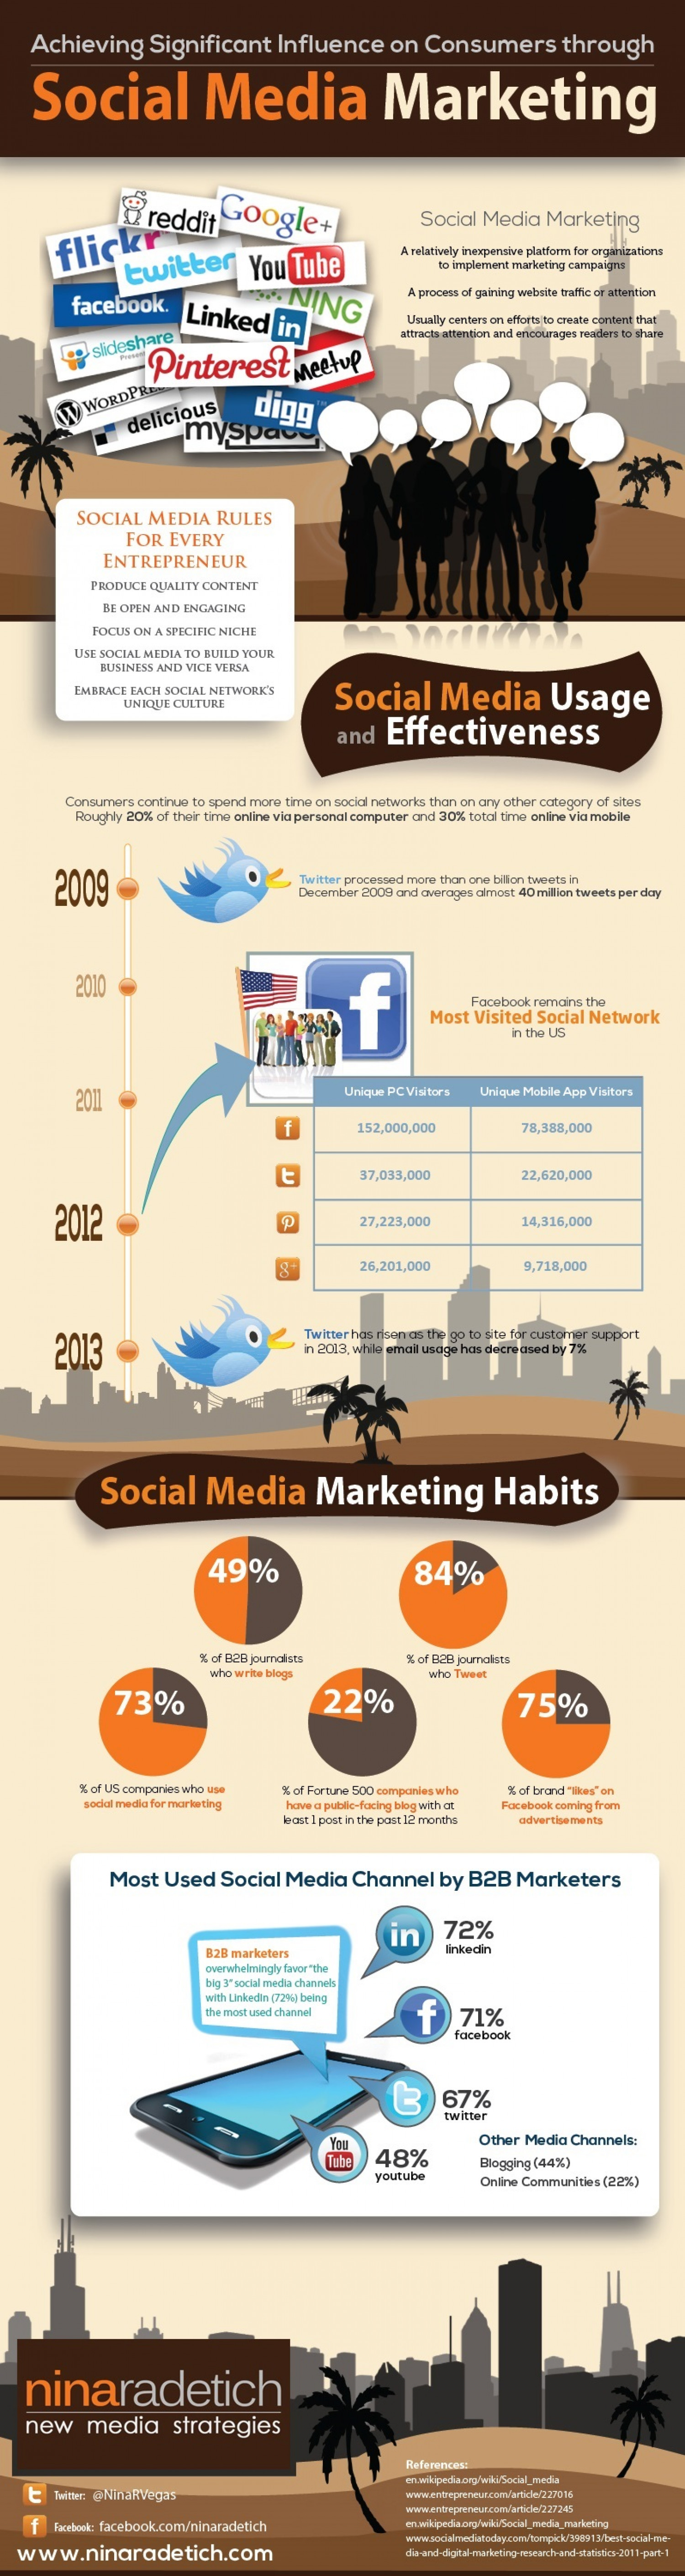 Achieving Significant Influence on Consumers through Social Media Marketing Infographic